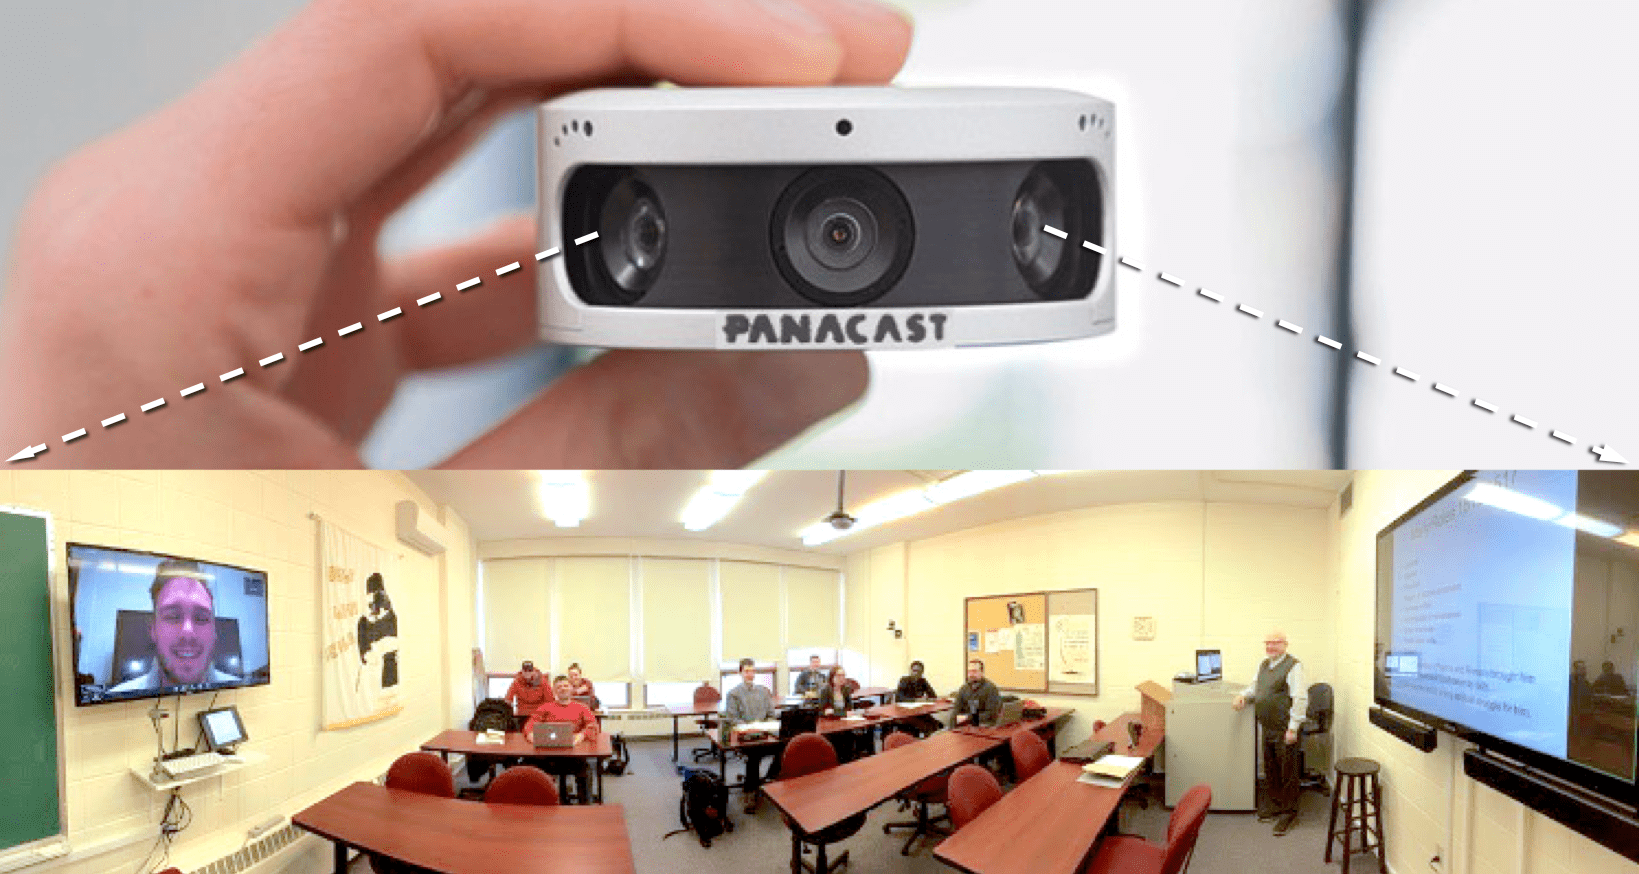 Thank you to everyone who took part in our two recent PanaCast 2 Video Camera webinars